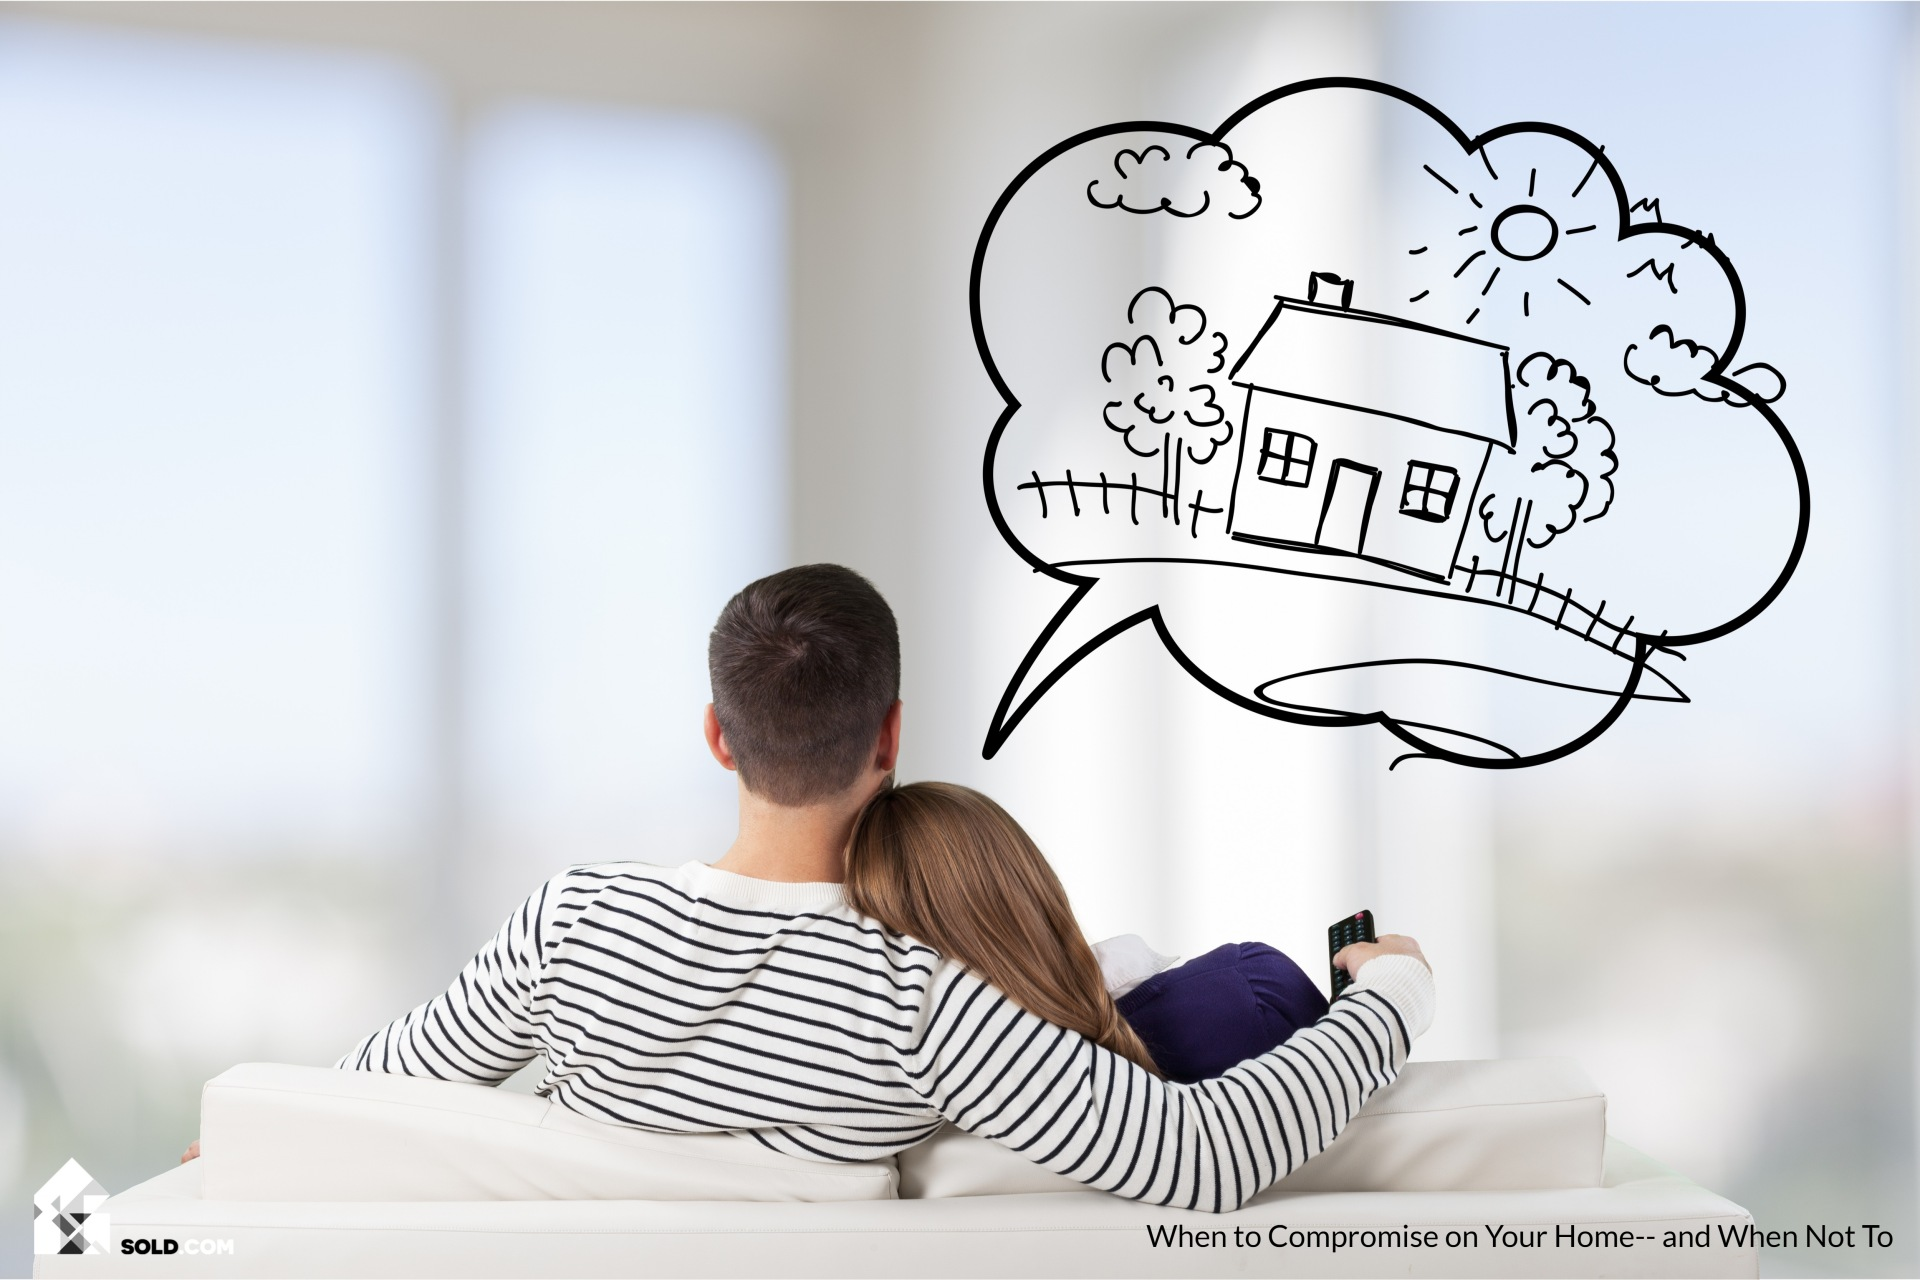 When to Compromise on Your Home—and When Not To